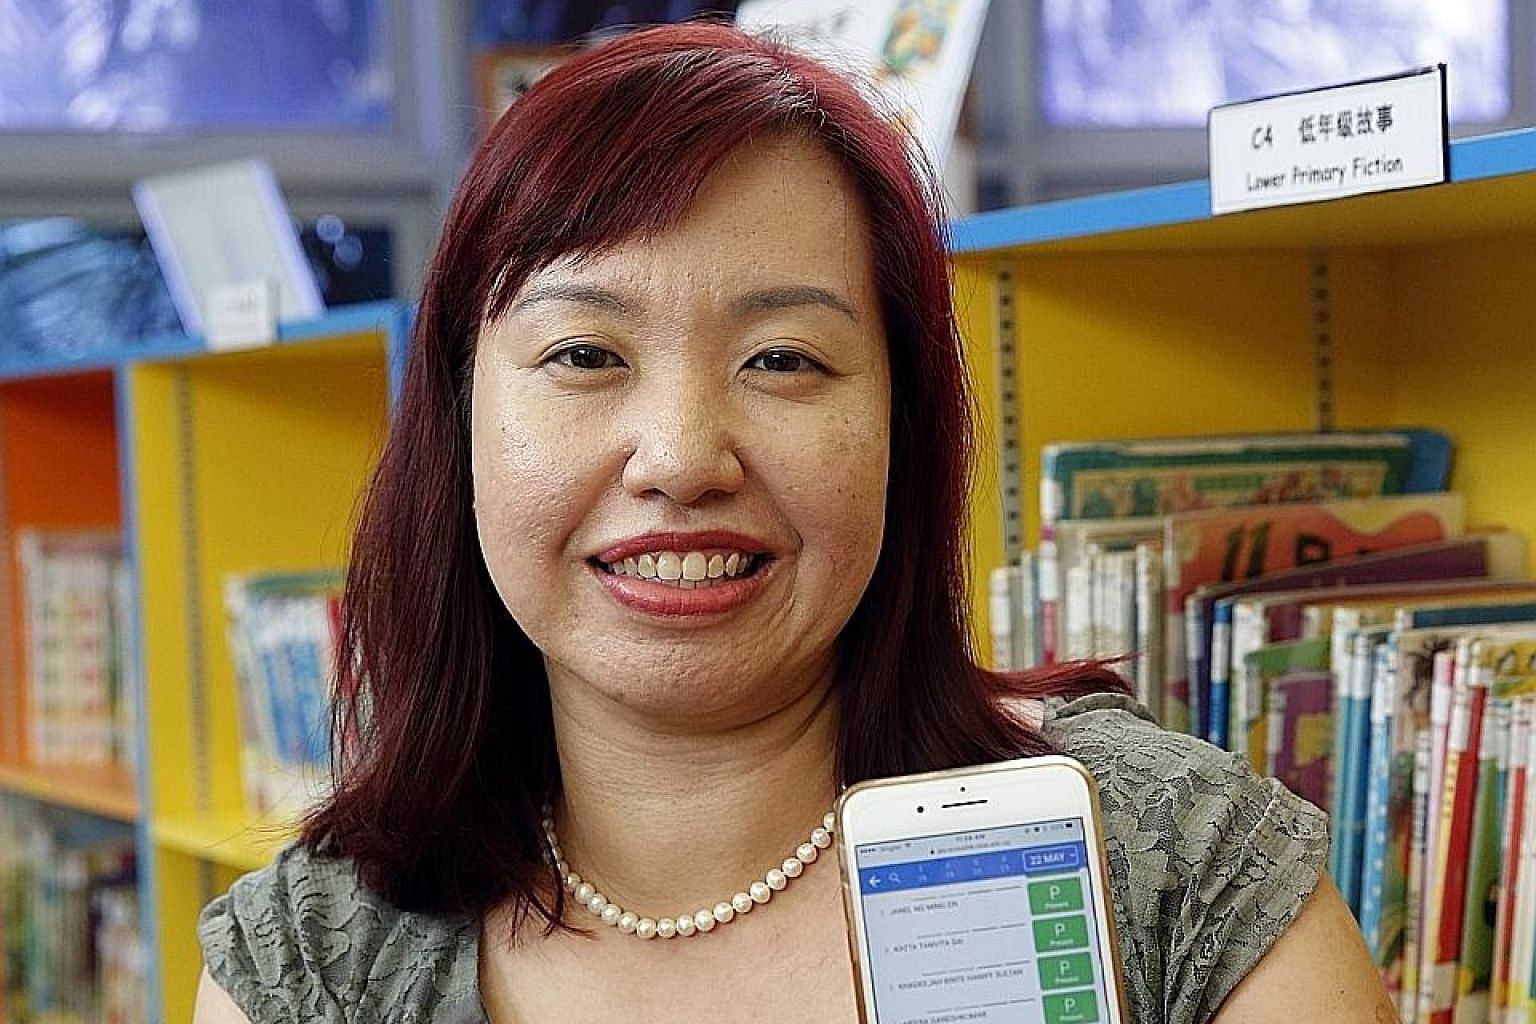 Edgefield Primary School teacher Tan Pin Pin uses a mobile app on her phone to take down her pupils' attendance.